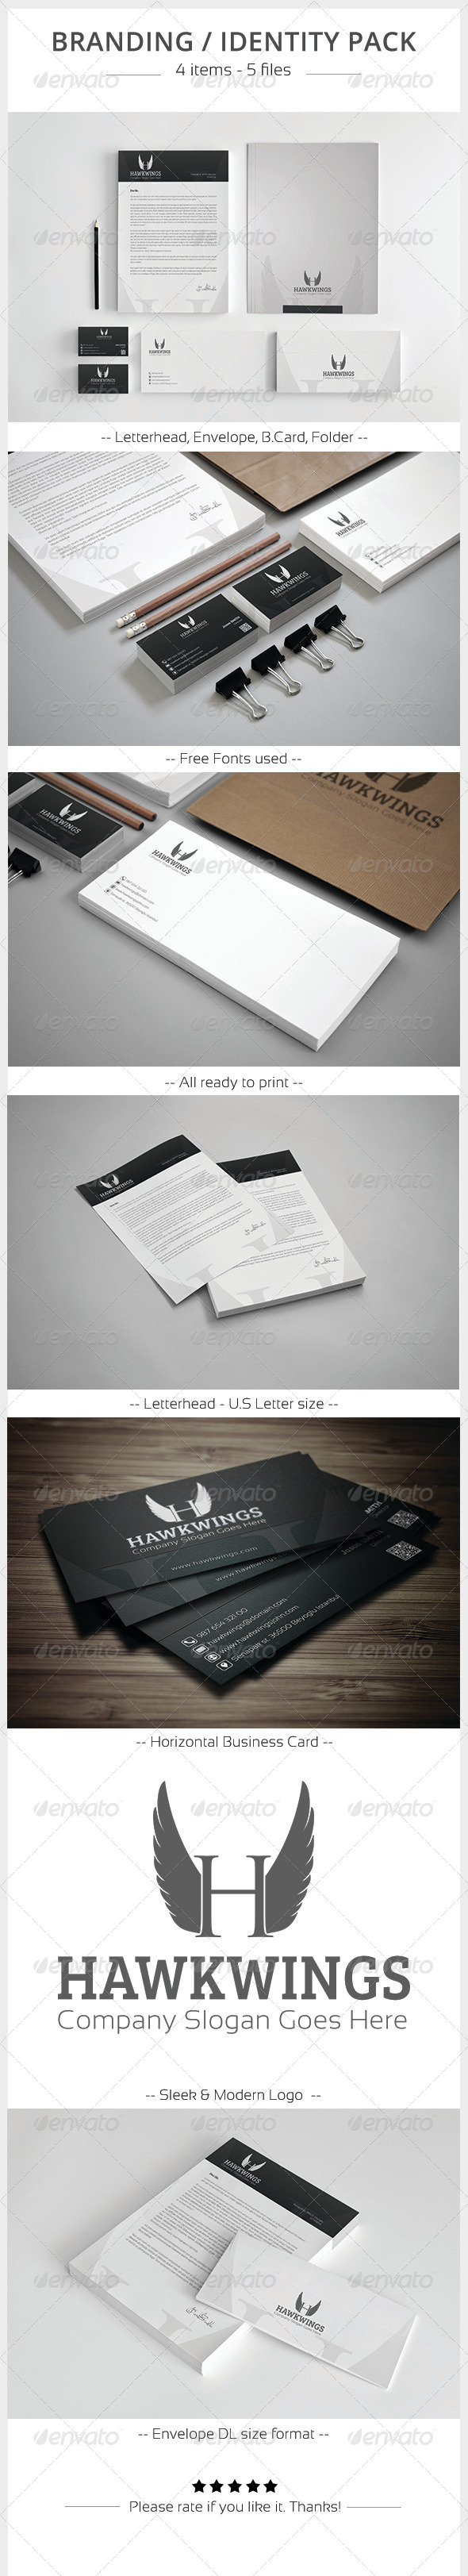 GraphicRiver Hawkwings Corporate Identity Pack 5850536